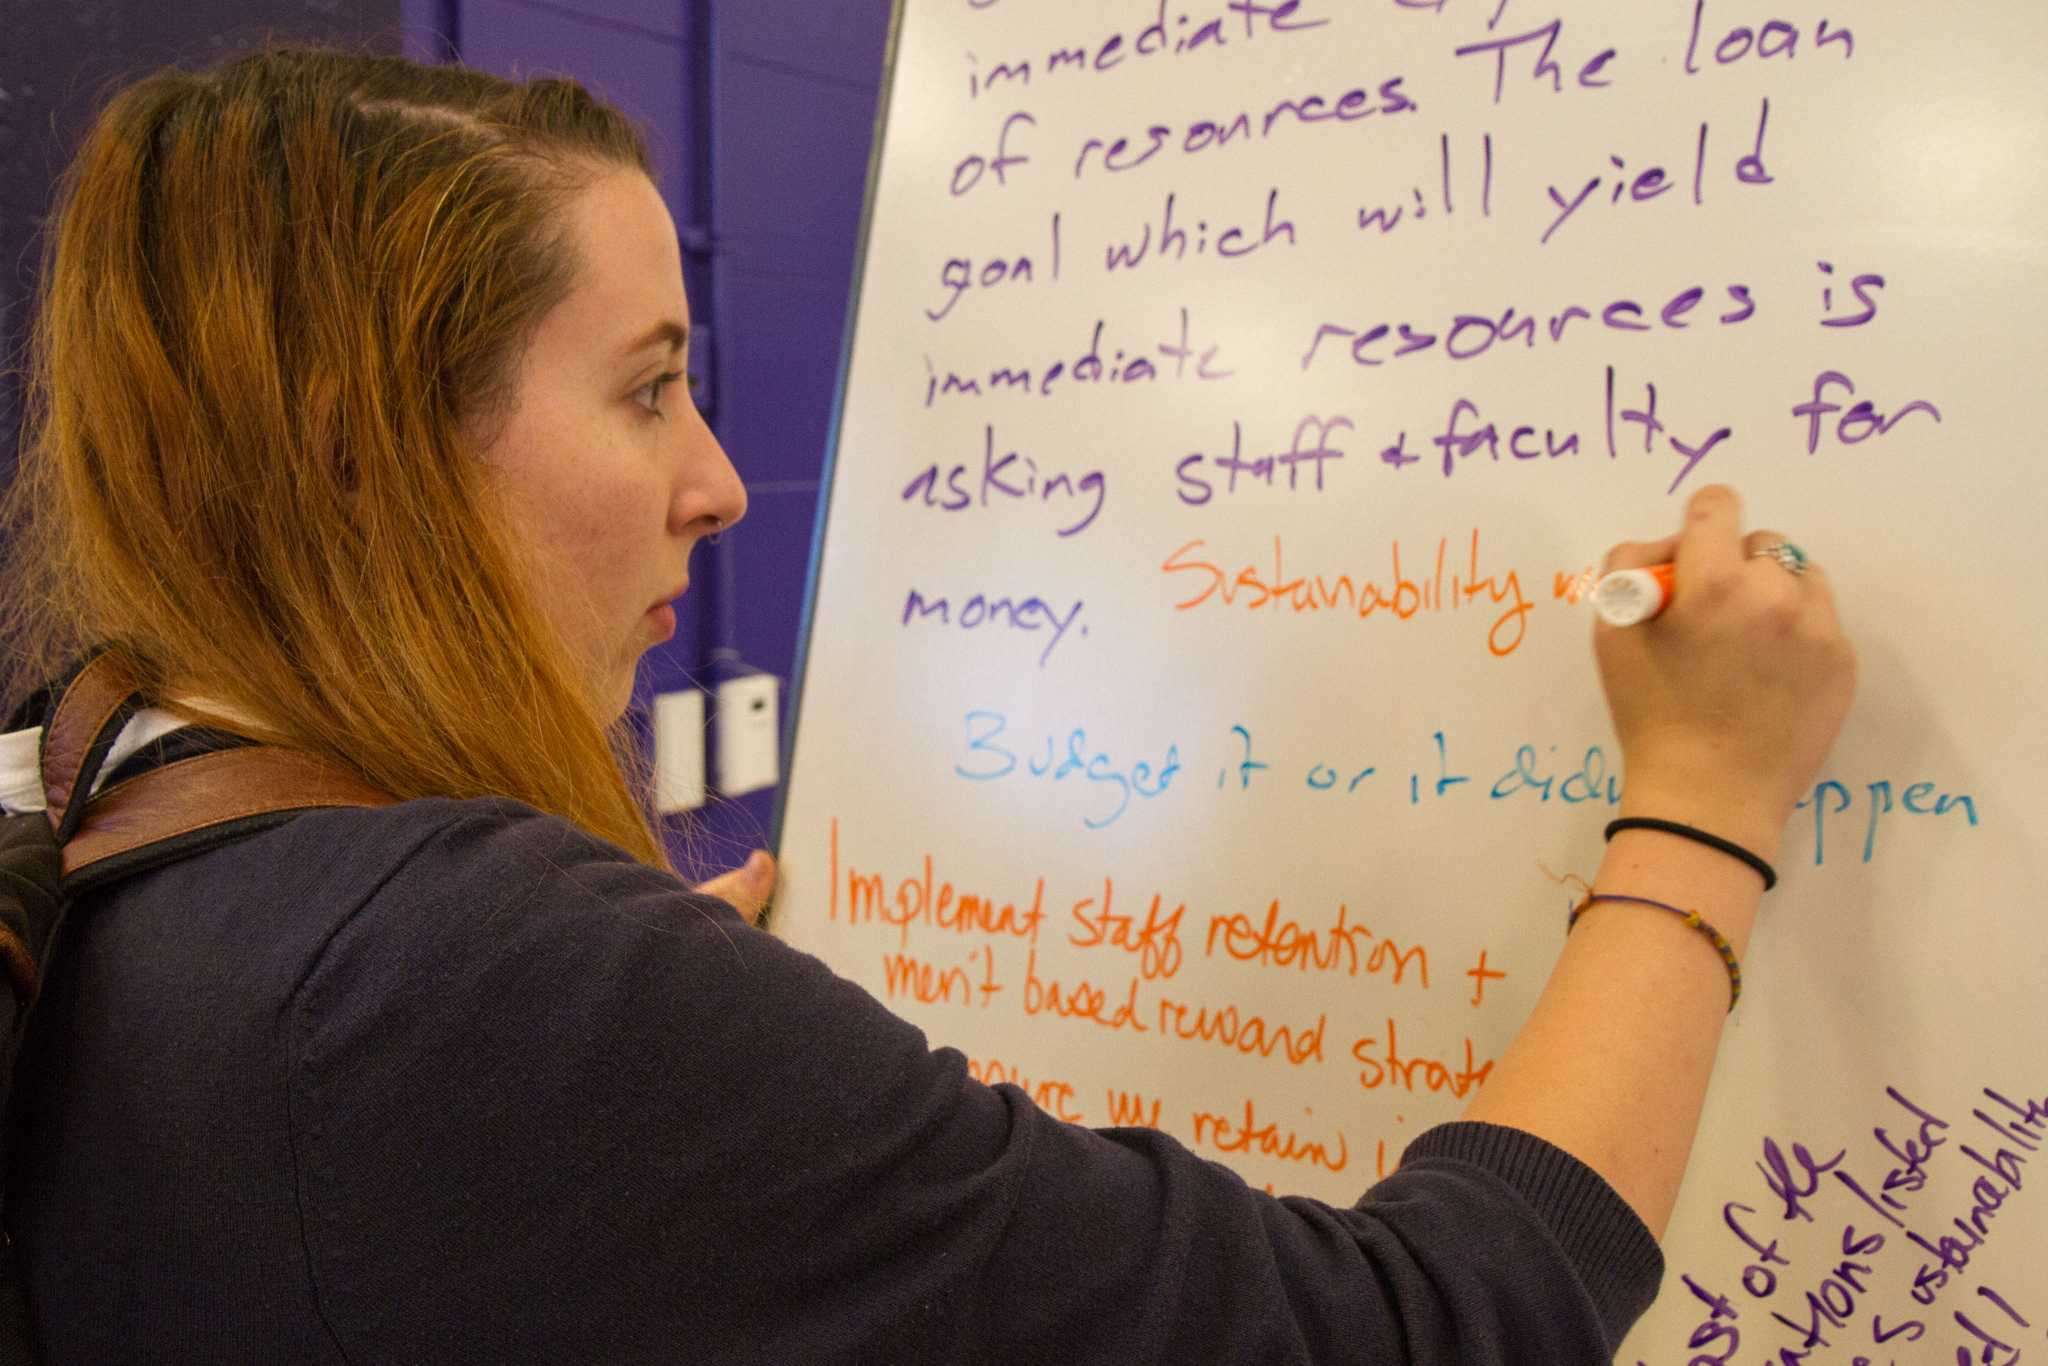 Marli Diestel, an environmental studies major, expresses concerns about sustainability on a dry erase board during the Academic Senate's Strategic Plan meeting in the SF State Gymnasium Tuesday, Oct. 21, 2014.